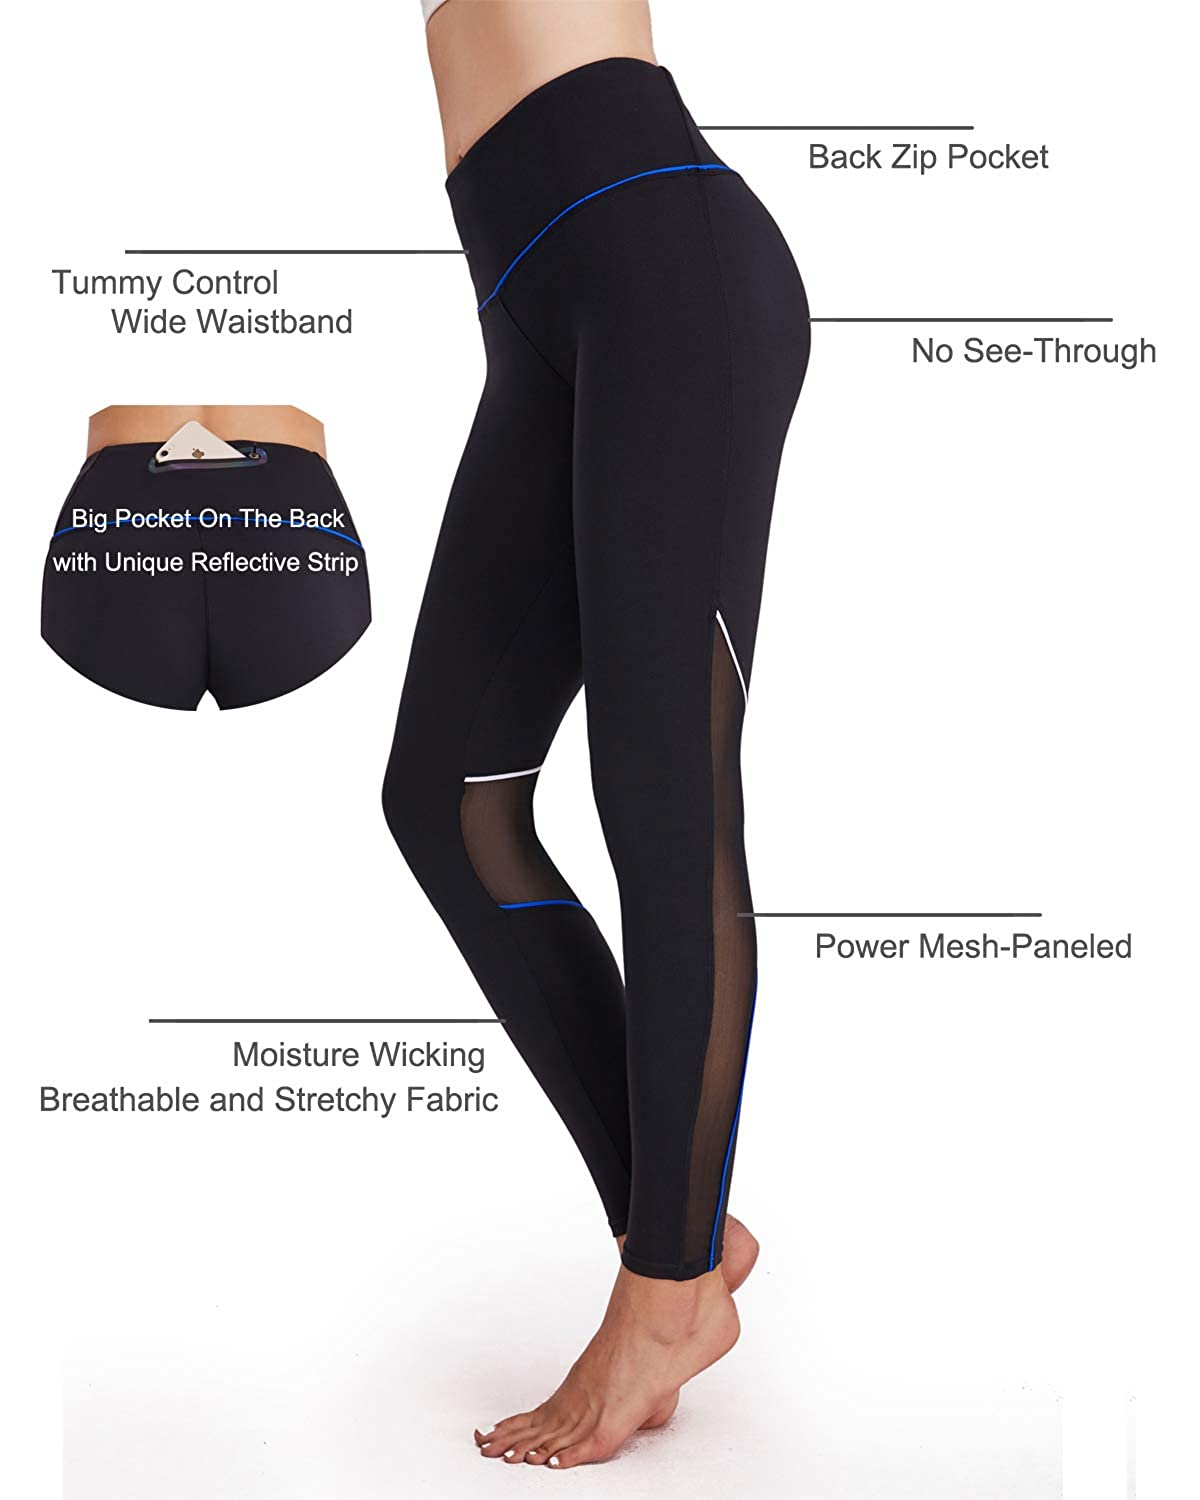 763fef7677 Amazon.com  HAIVIDO Women s High Waist Yoga Pants with Back Zip Pocket  Tummy Control Workout Running Yoga Leggings Mesh Athletic Pants  Clothing